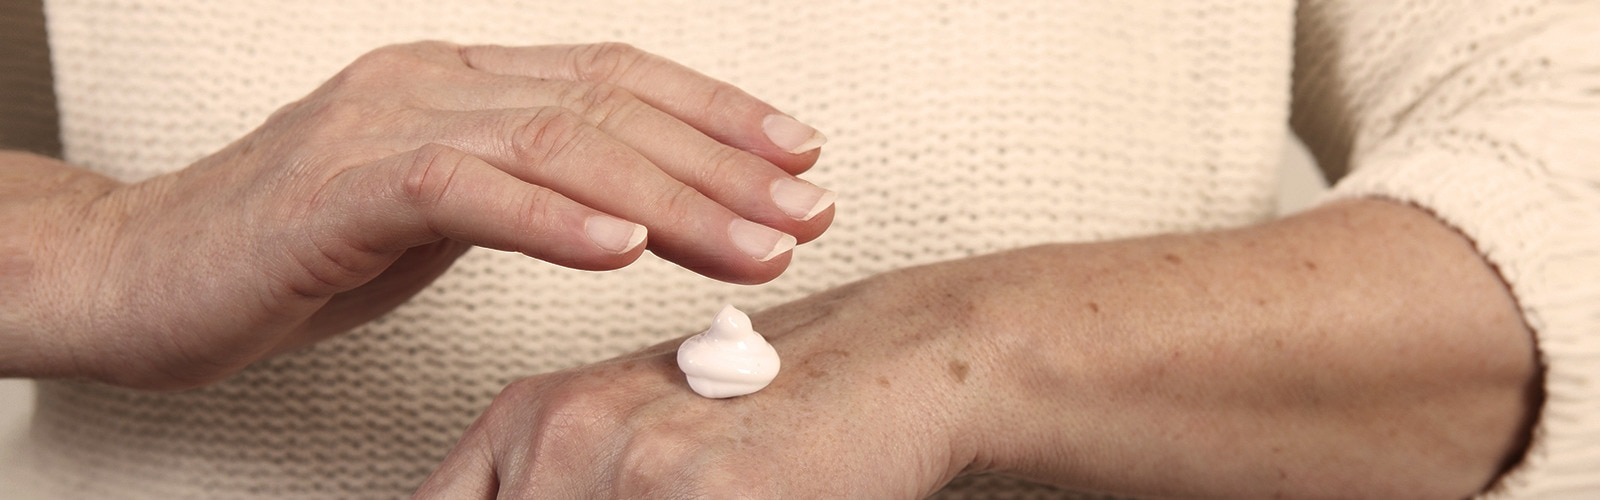 Elderly woman applying moisturizer